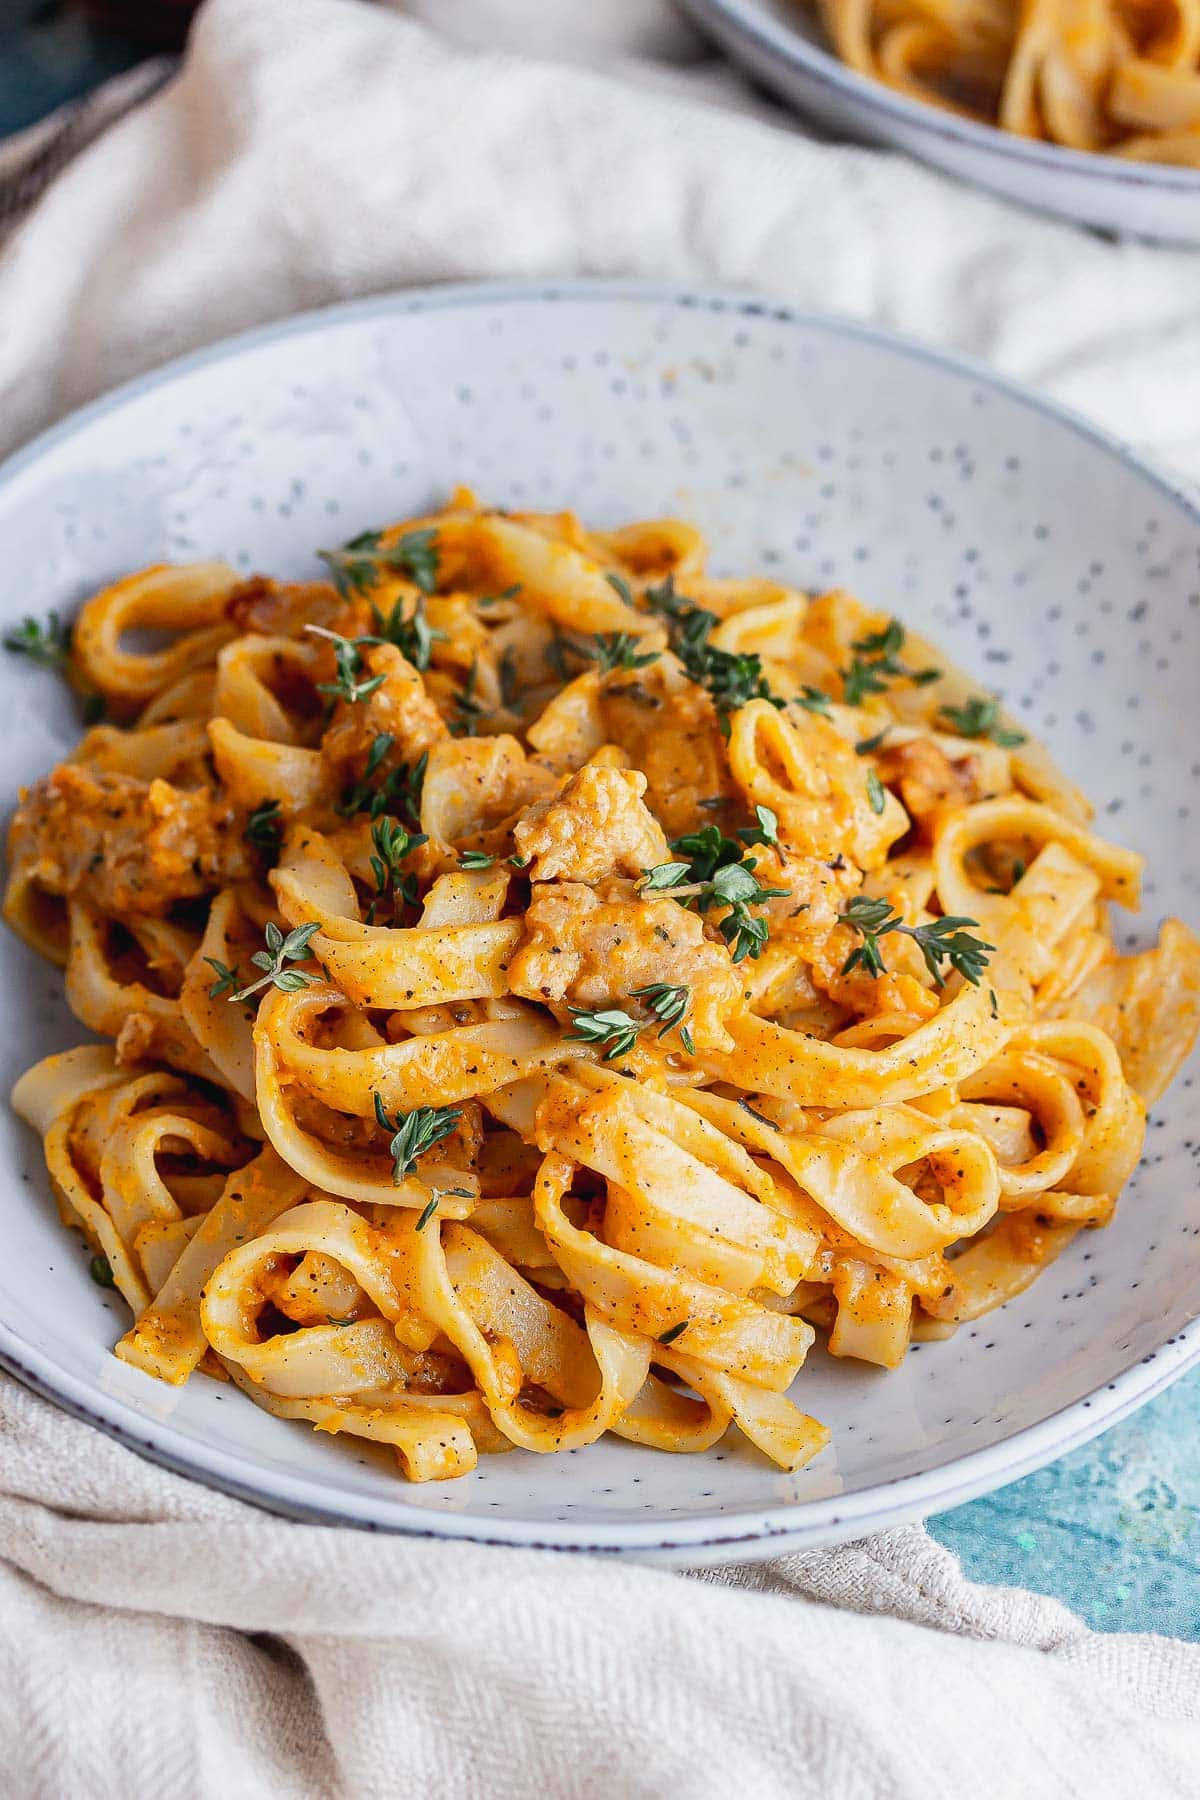 Blue bowl of squash pasta with a beige cloth